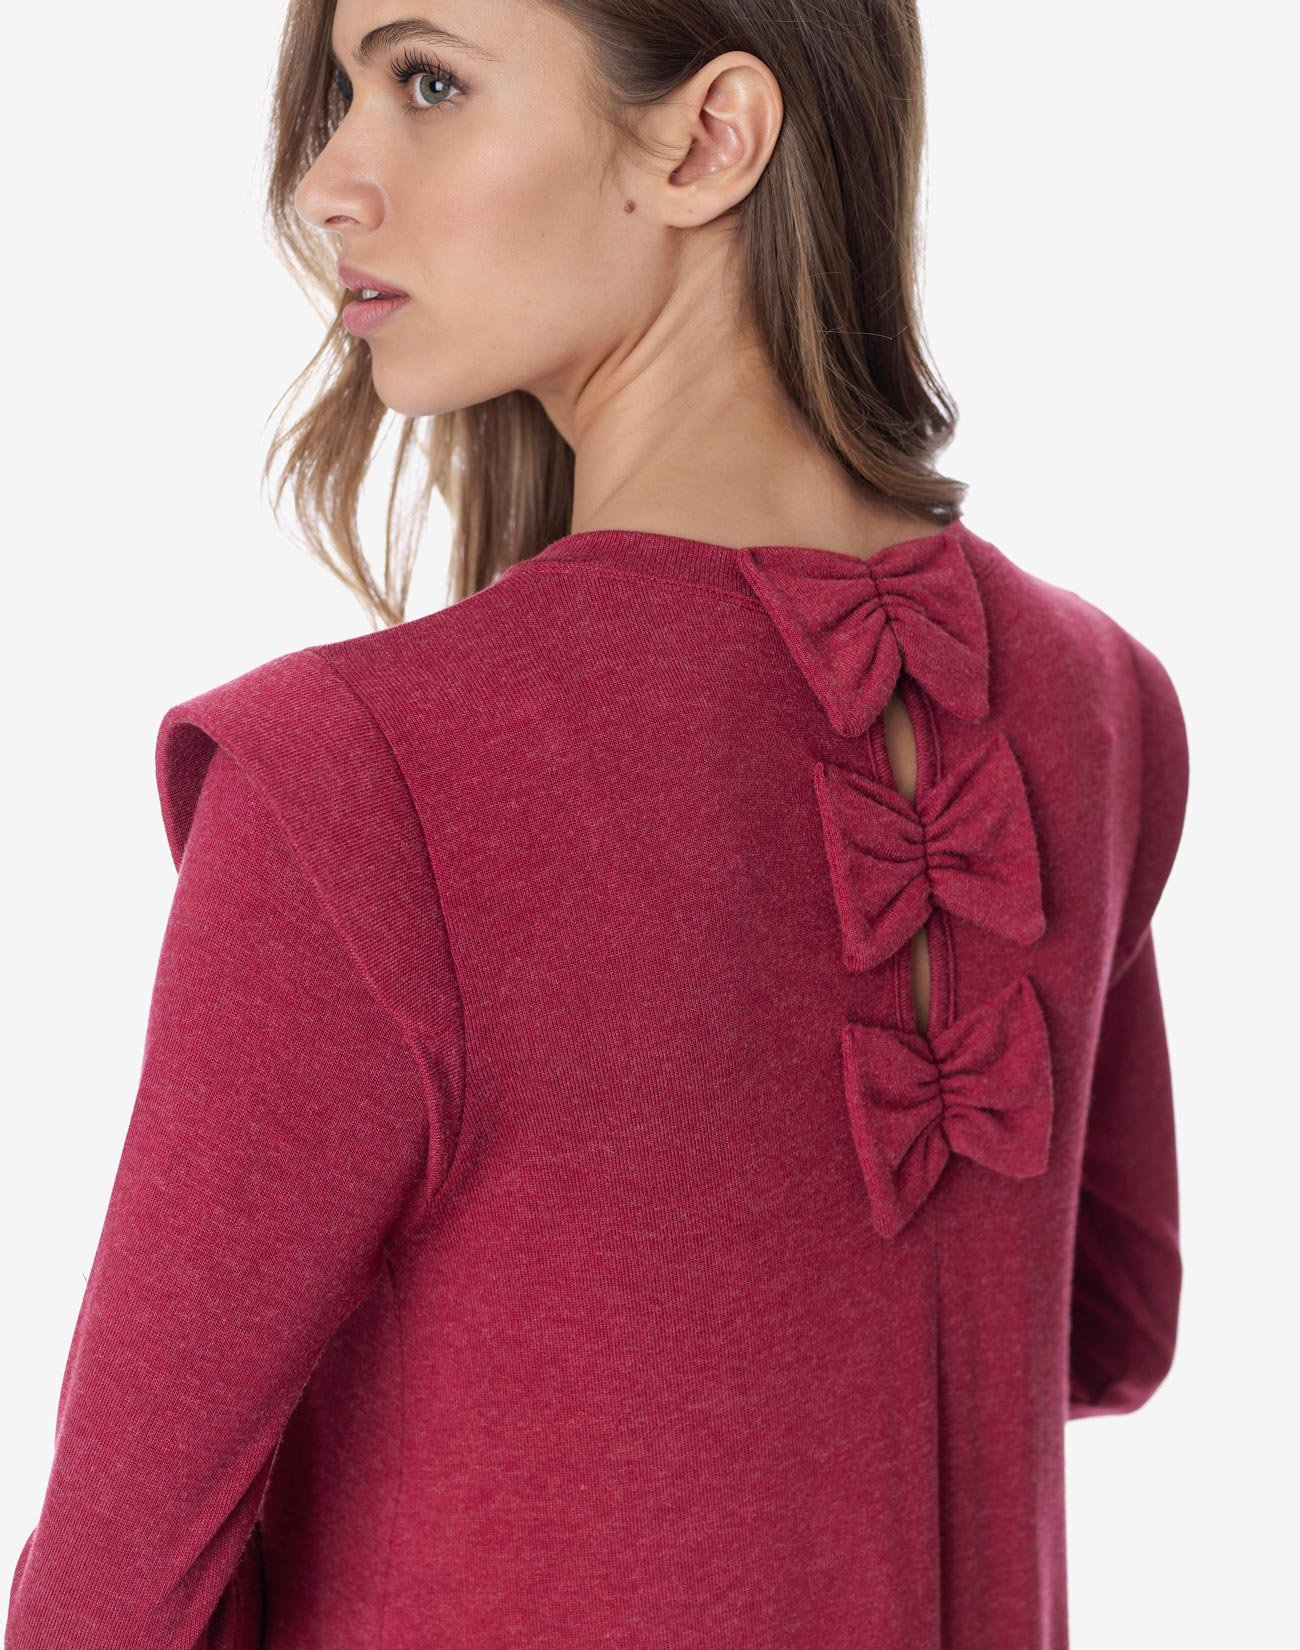 Top with shoulder pads and bows